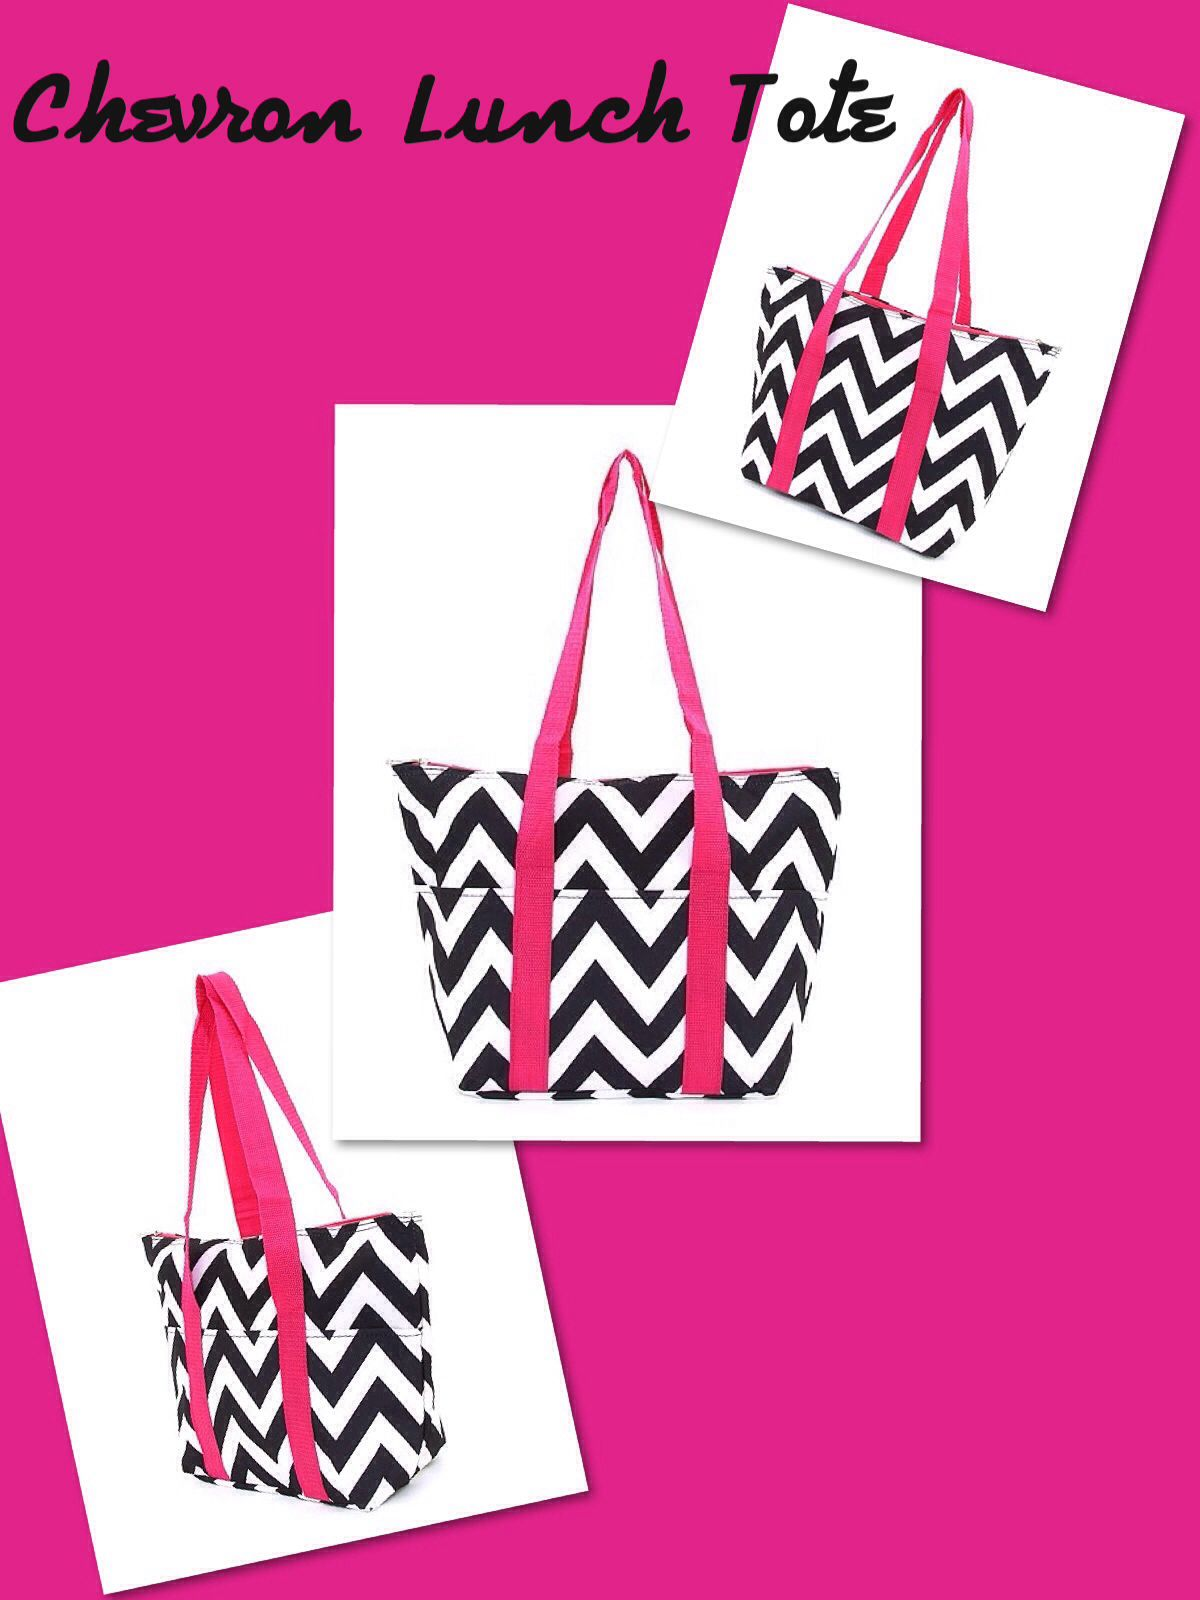 Awesome Insulated Chevron Lunch Tote!